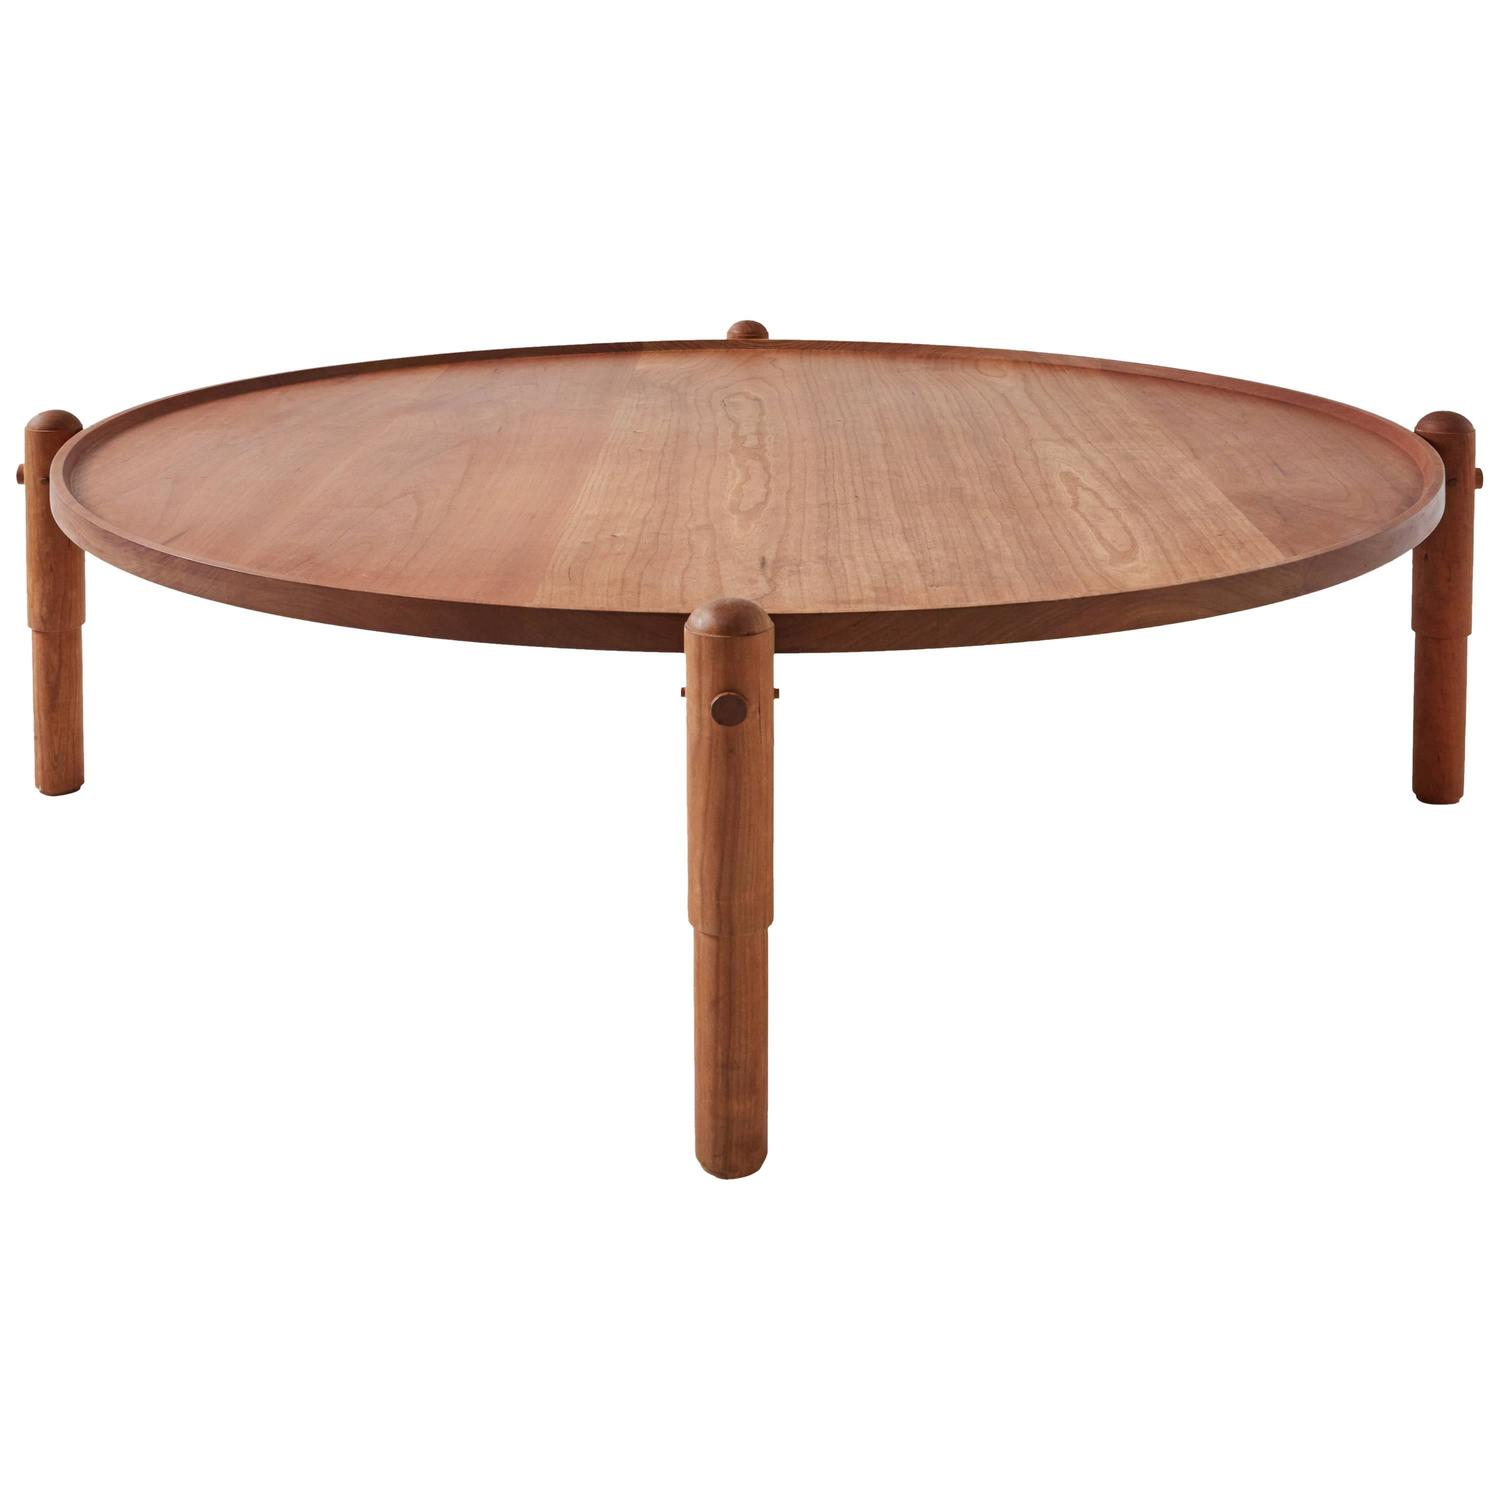 Workstead Coffee Table In Cherry With Turned Wooden Legs And Circular Tabletop For Sale At 1stdibs